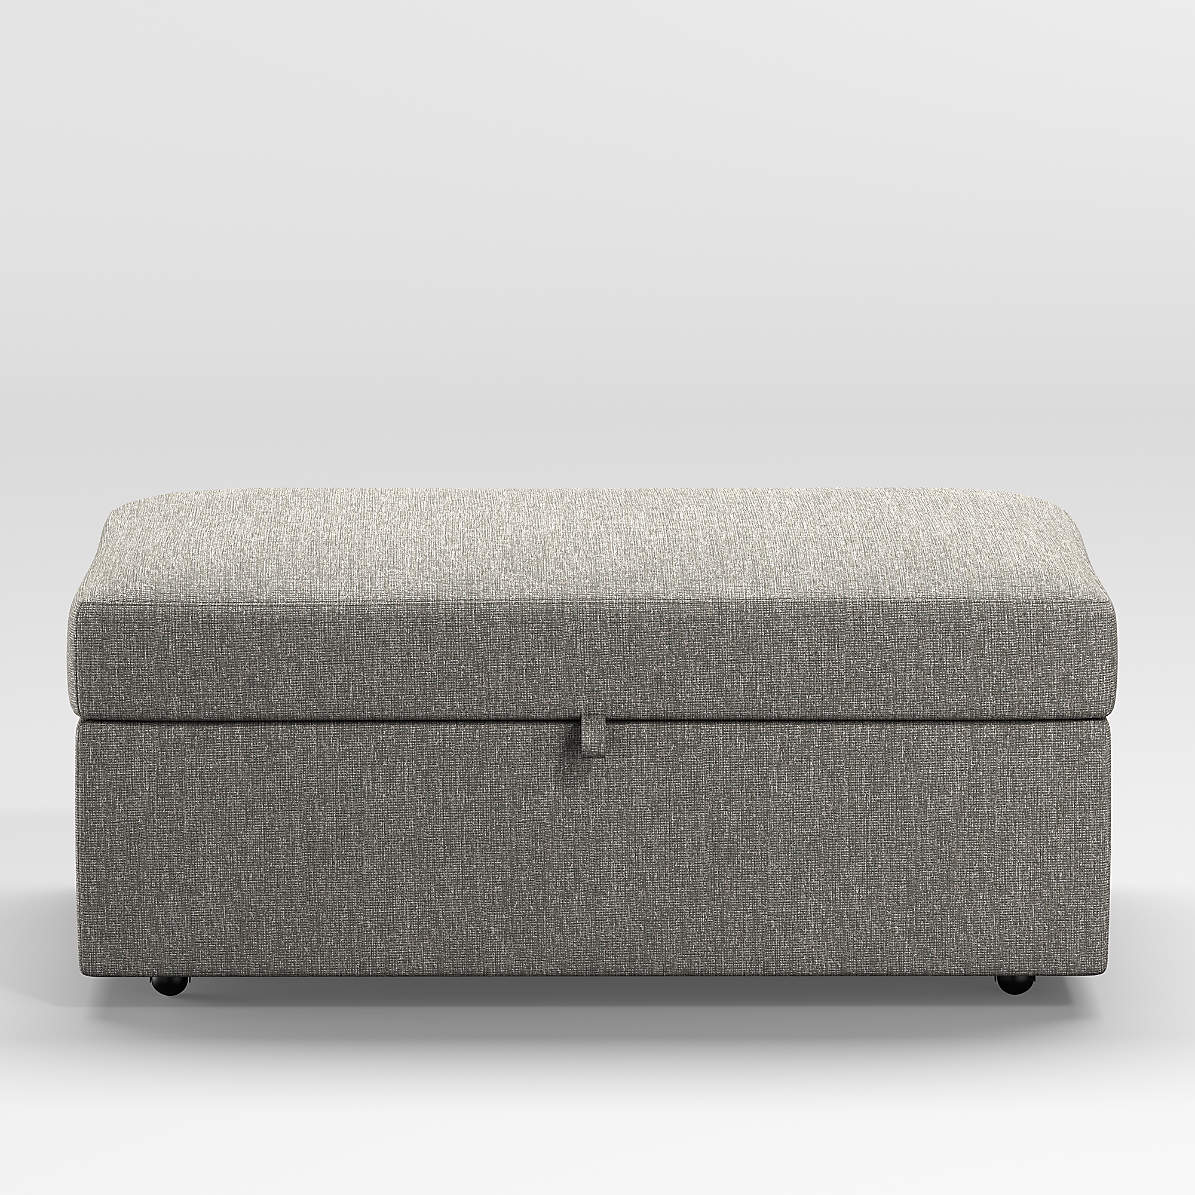 Gather Storage Ottoman With Tray Reviews Crate And Barrel